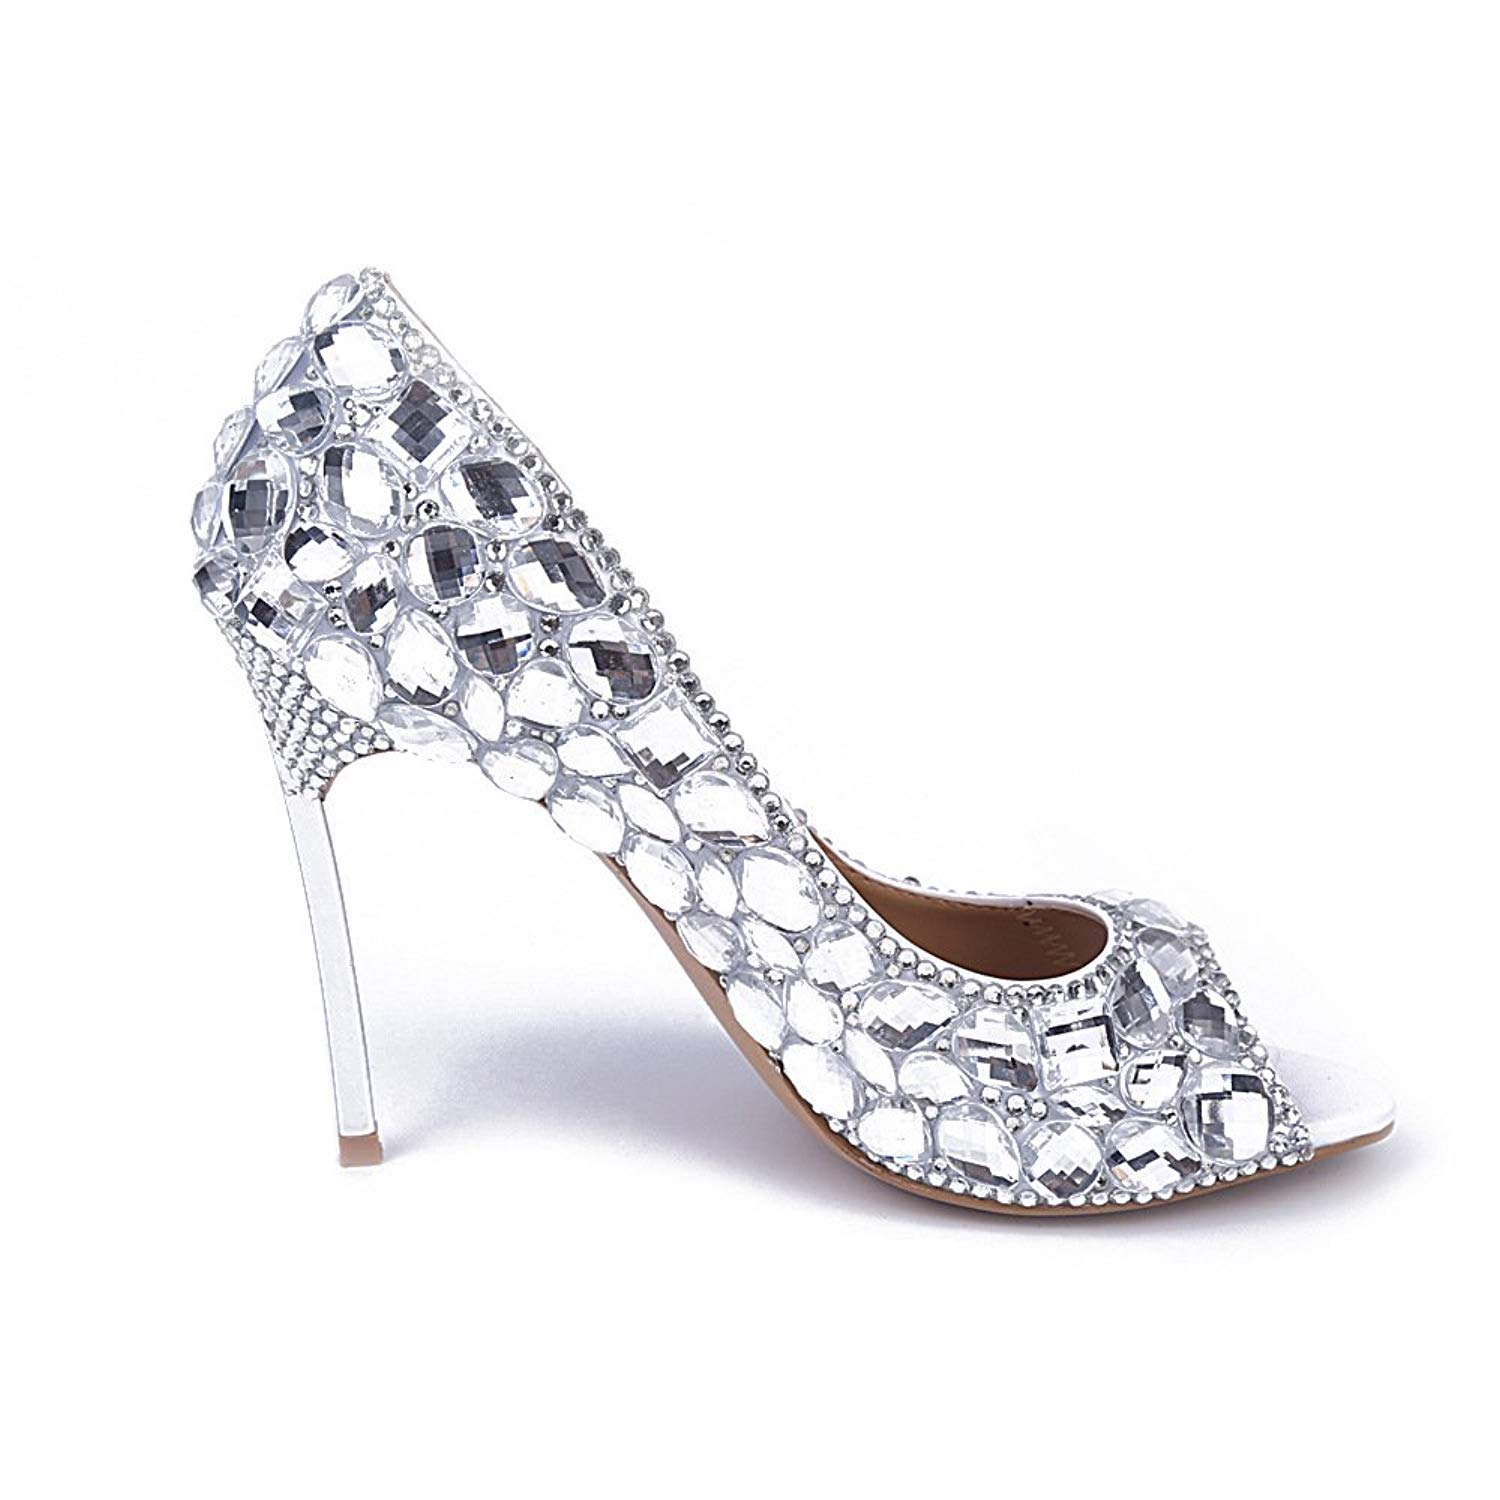 Shoemaker'S Heart High Heeled Shoes Heels Silver Pearl Diamond Crystal Diamond Wedding Bride Shoes Shoes Single Party Super High Heels